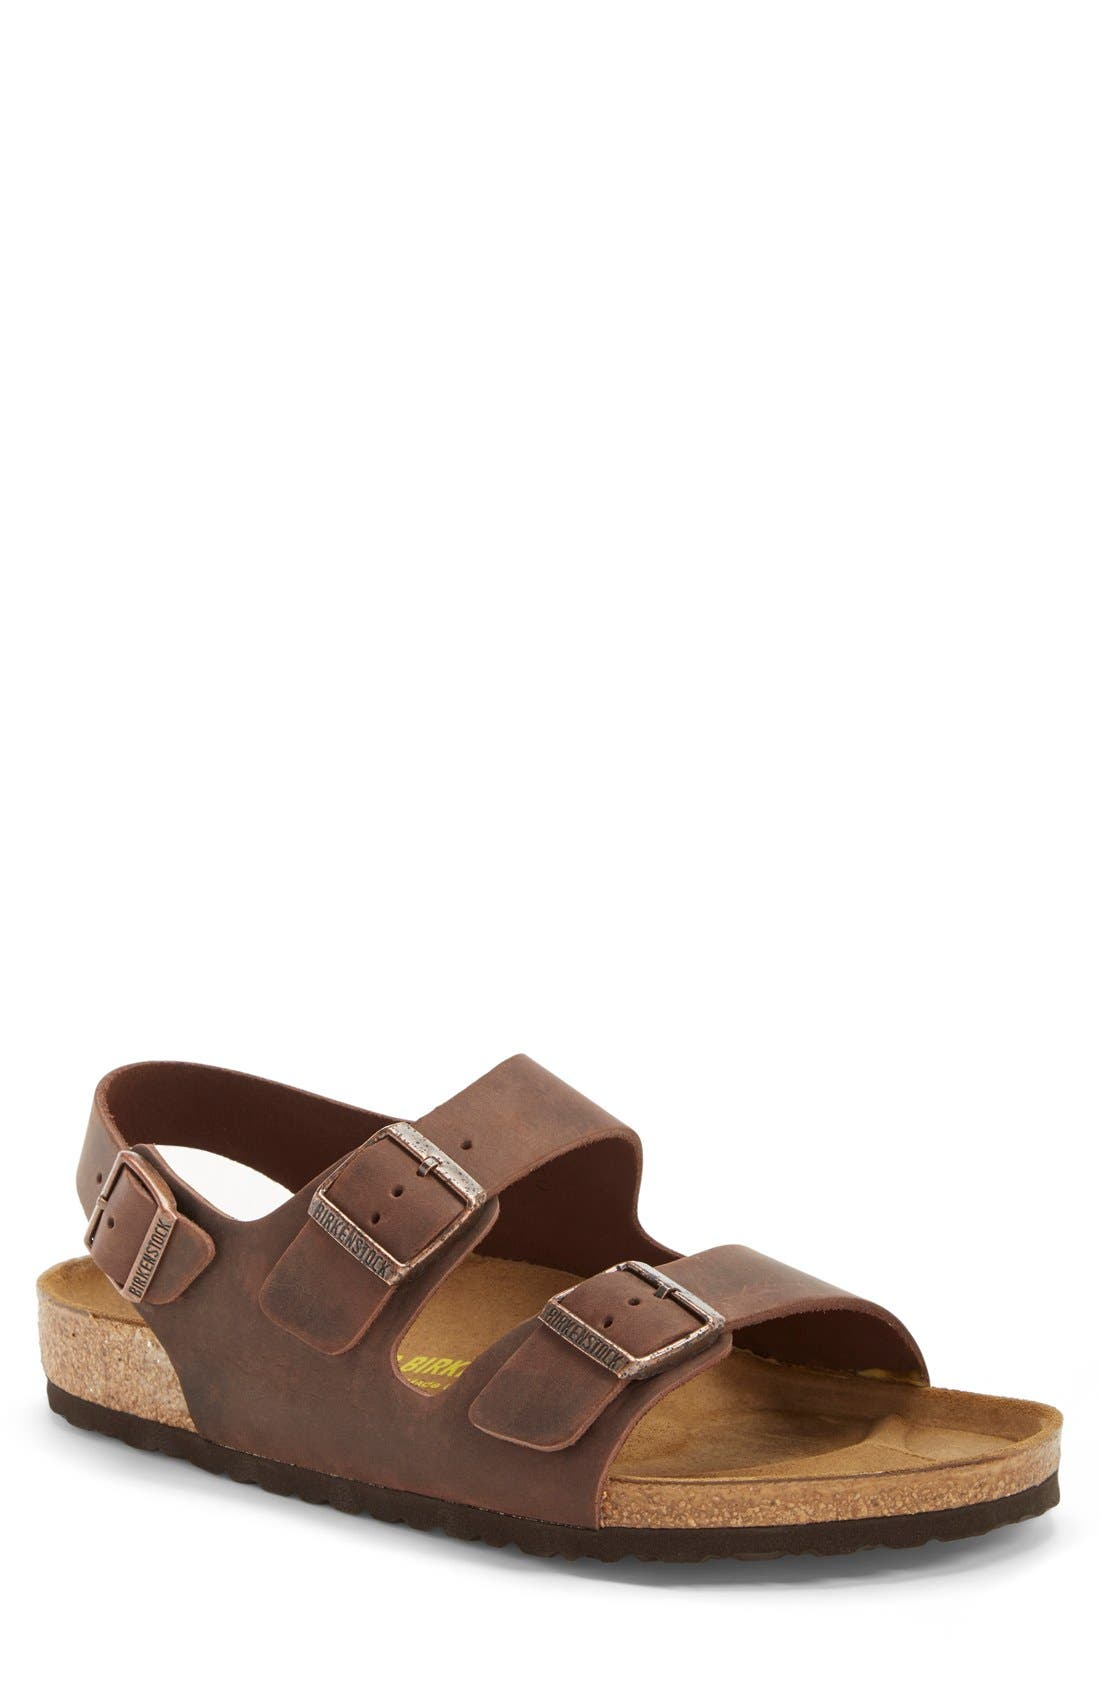 'Milano' Sandal,                             Main thumbnail 1, color,                             Habana Oiled